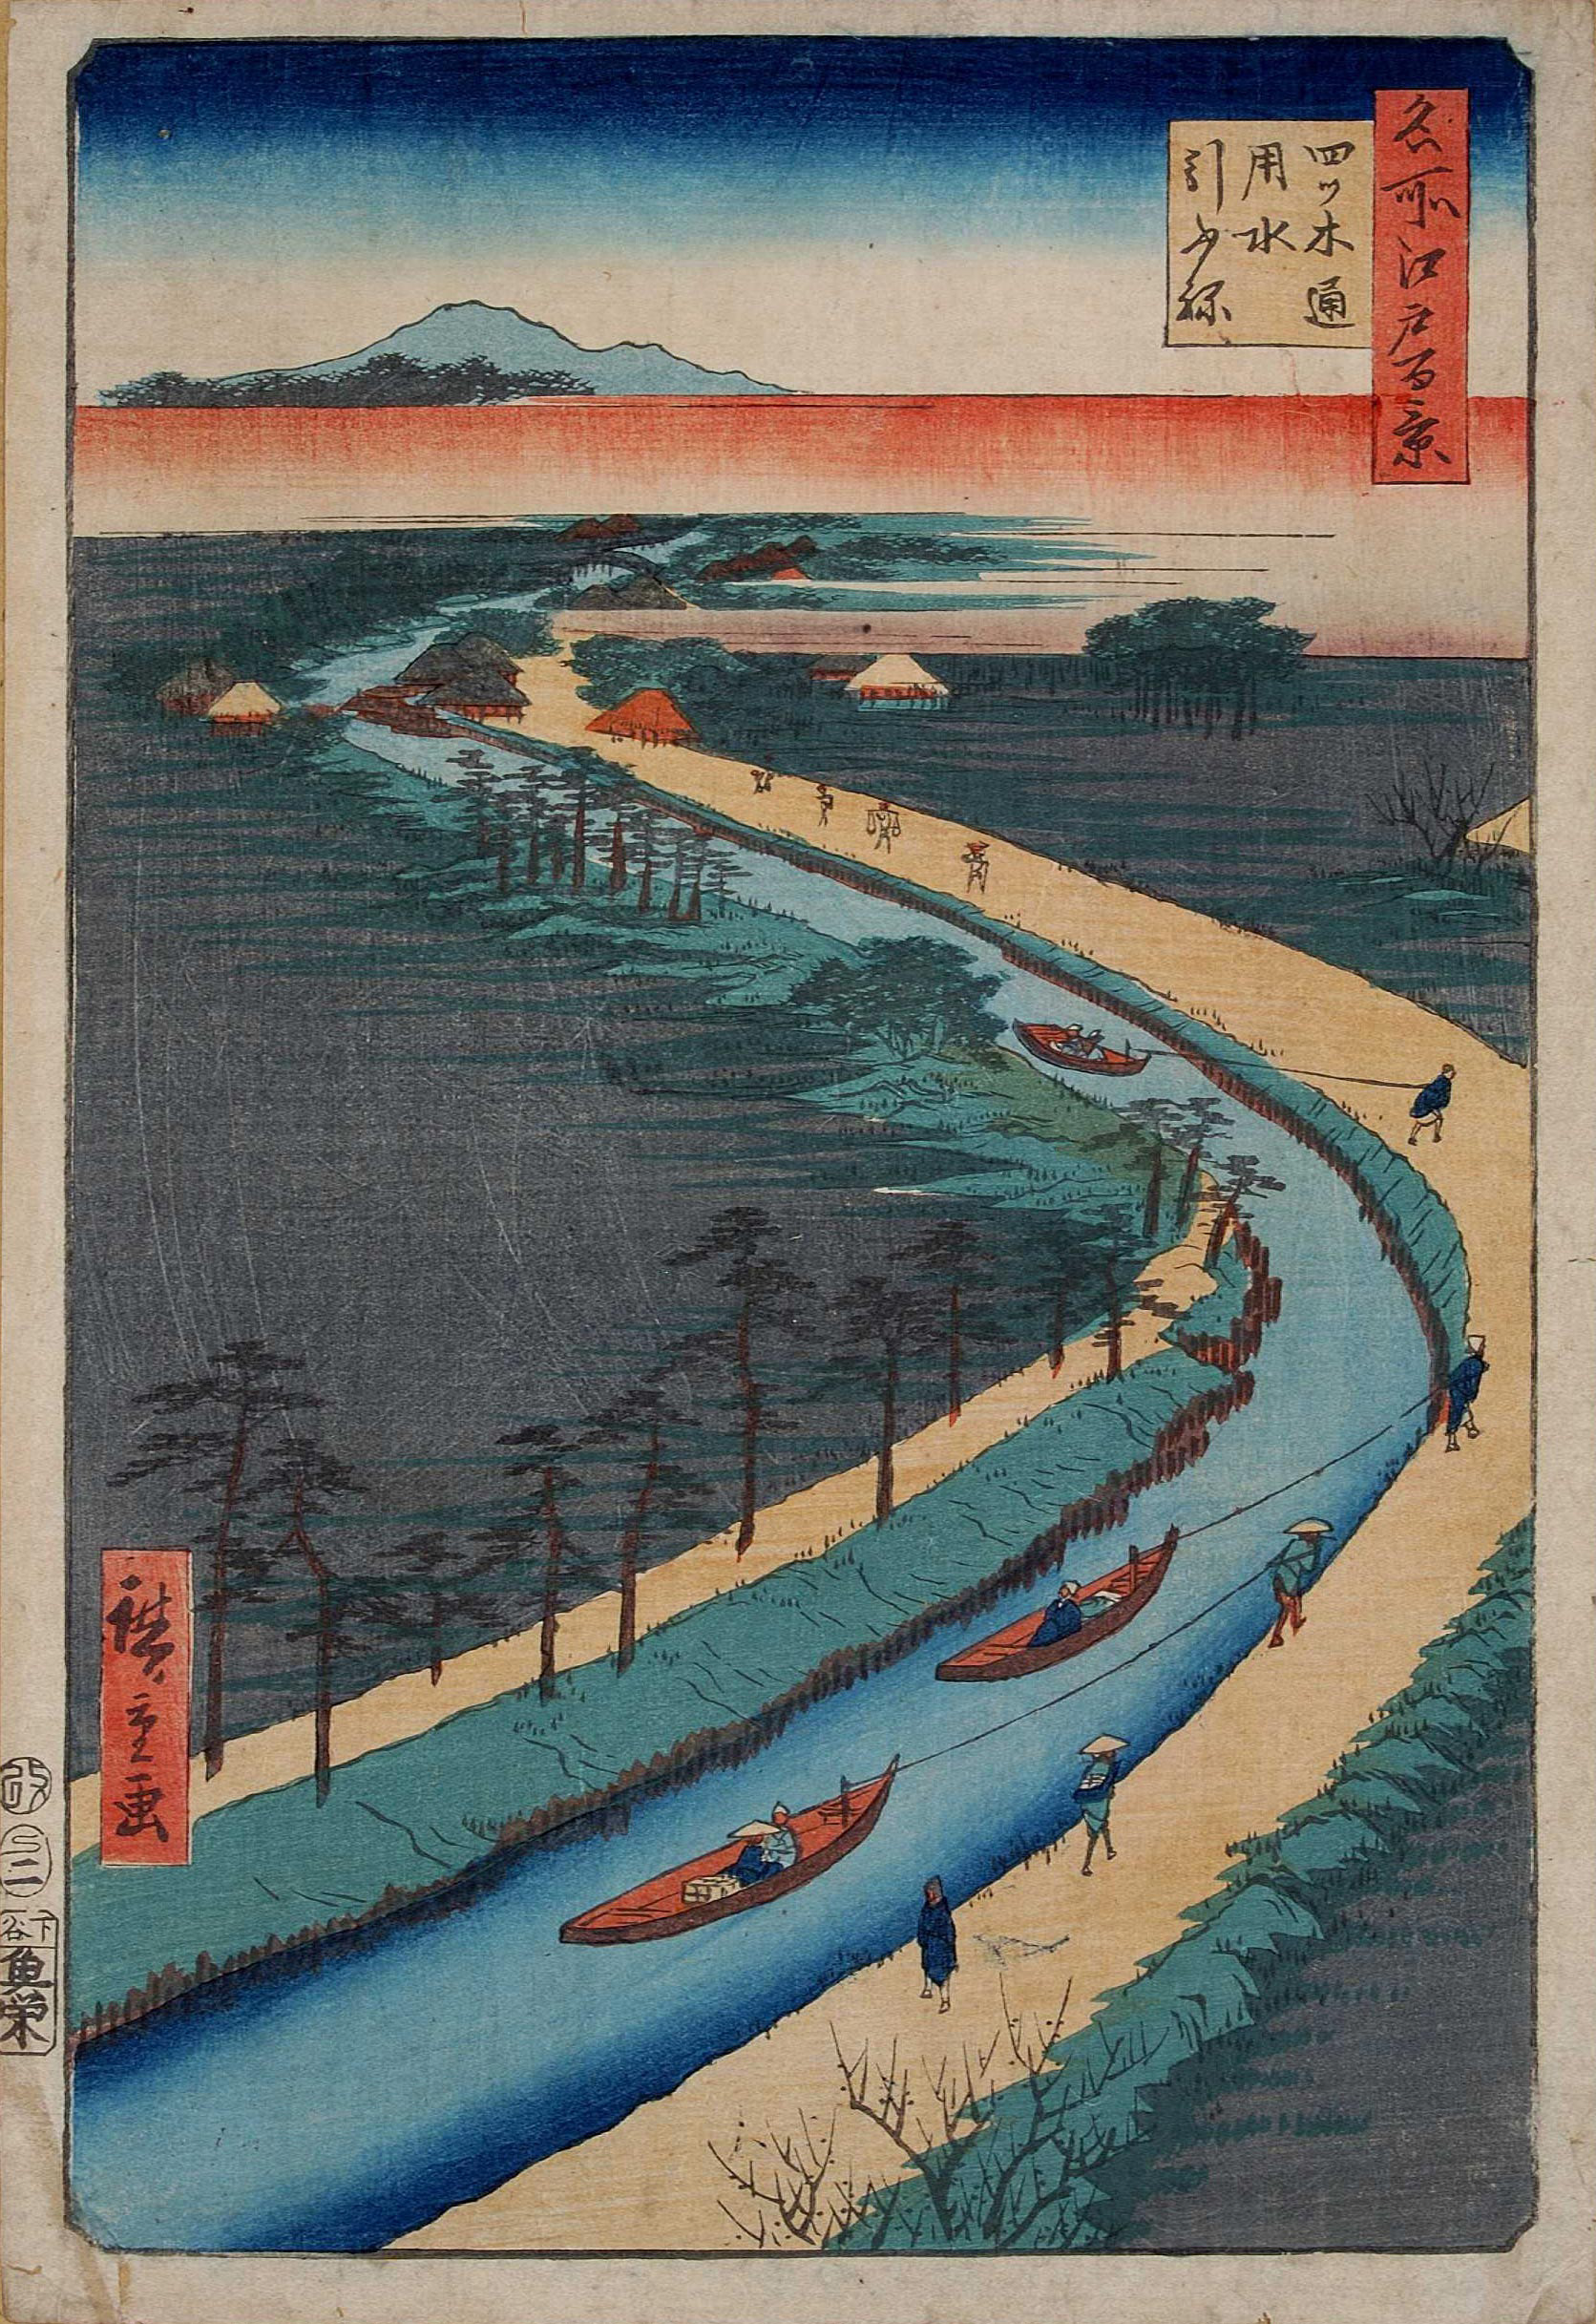 https://upload.wikimedia.org/wikipedia/commons/3/38/100_views_edo_033.jpg